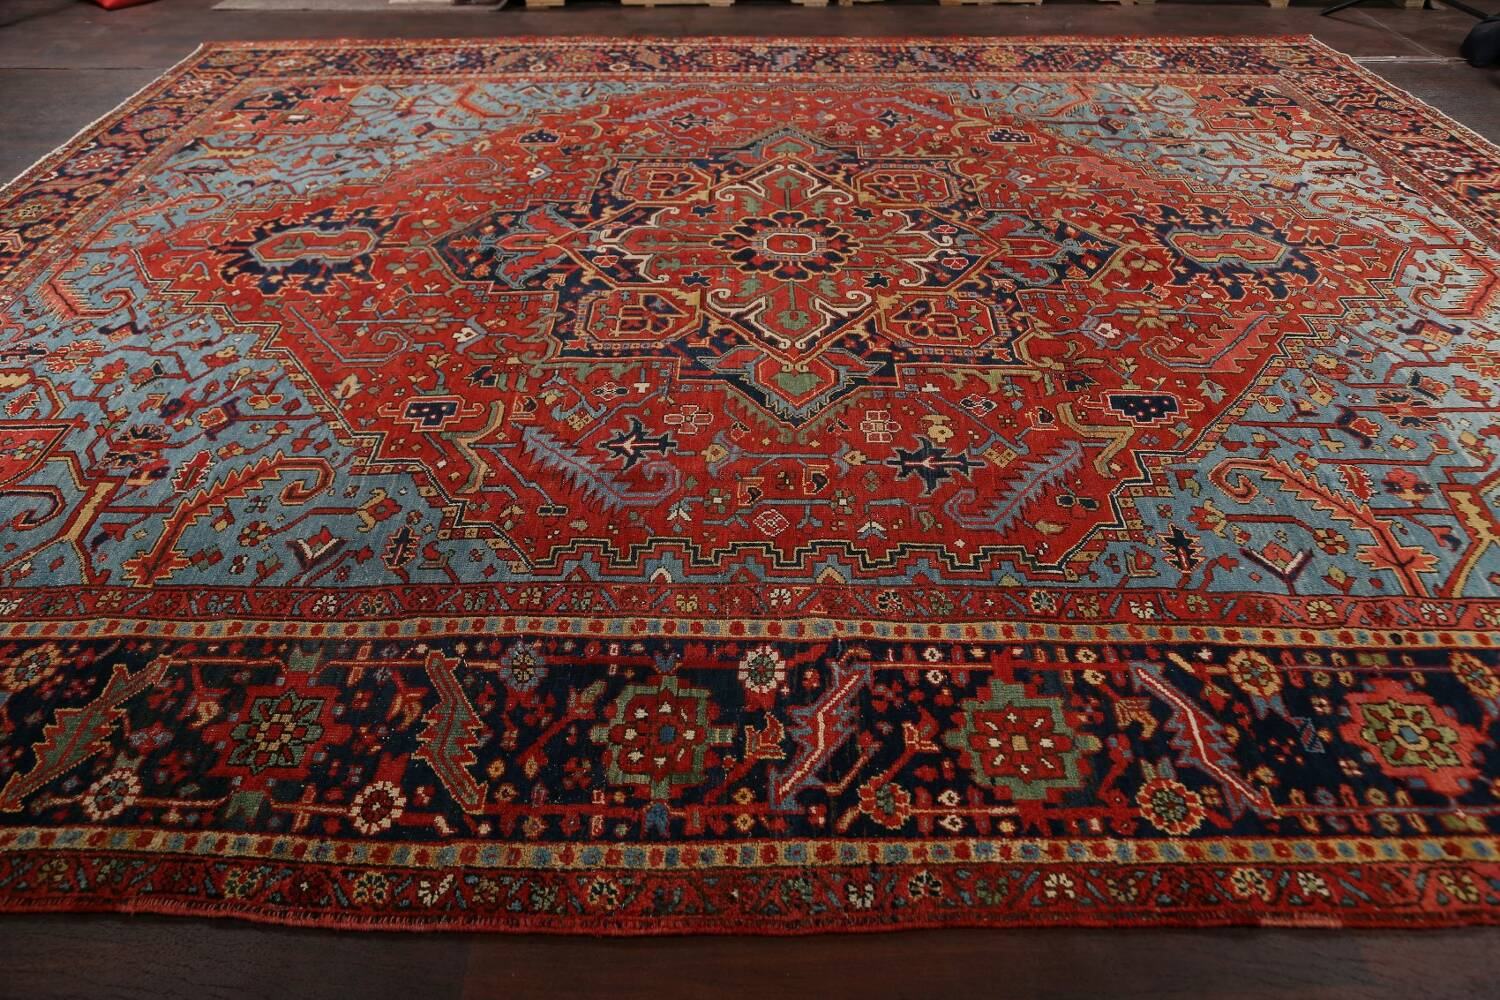 Pre-1900 Antique Vegetable Dye Heriz Serapi Persian Rug 12x14 image 16